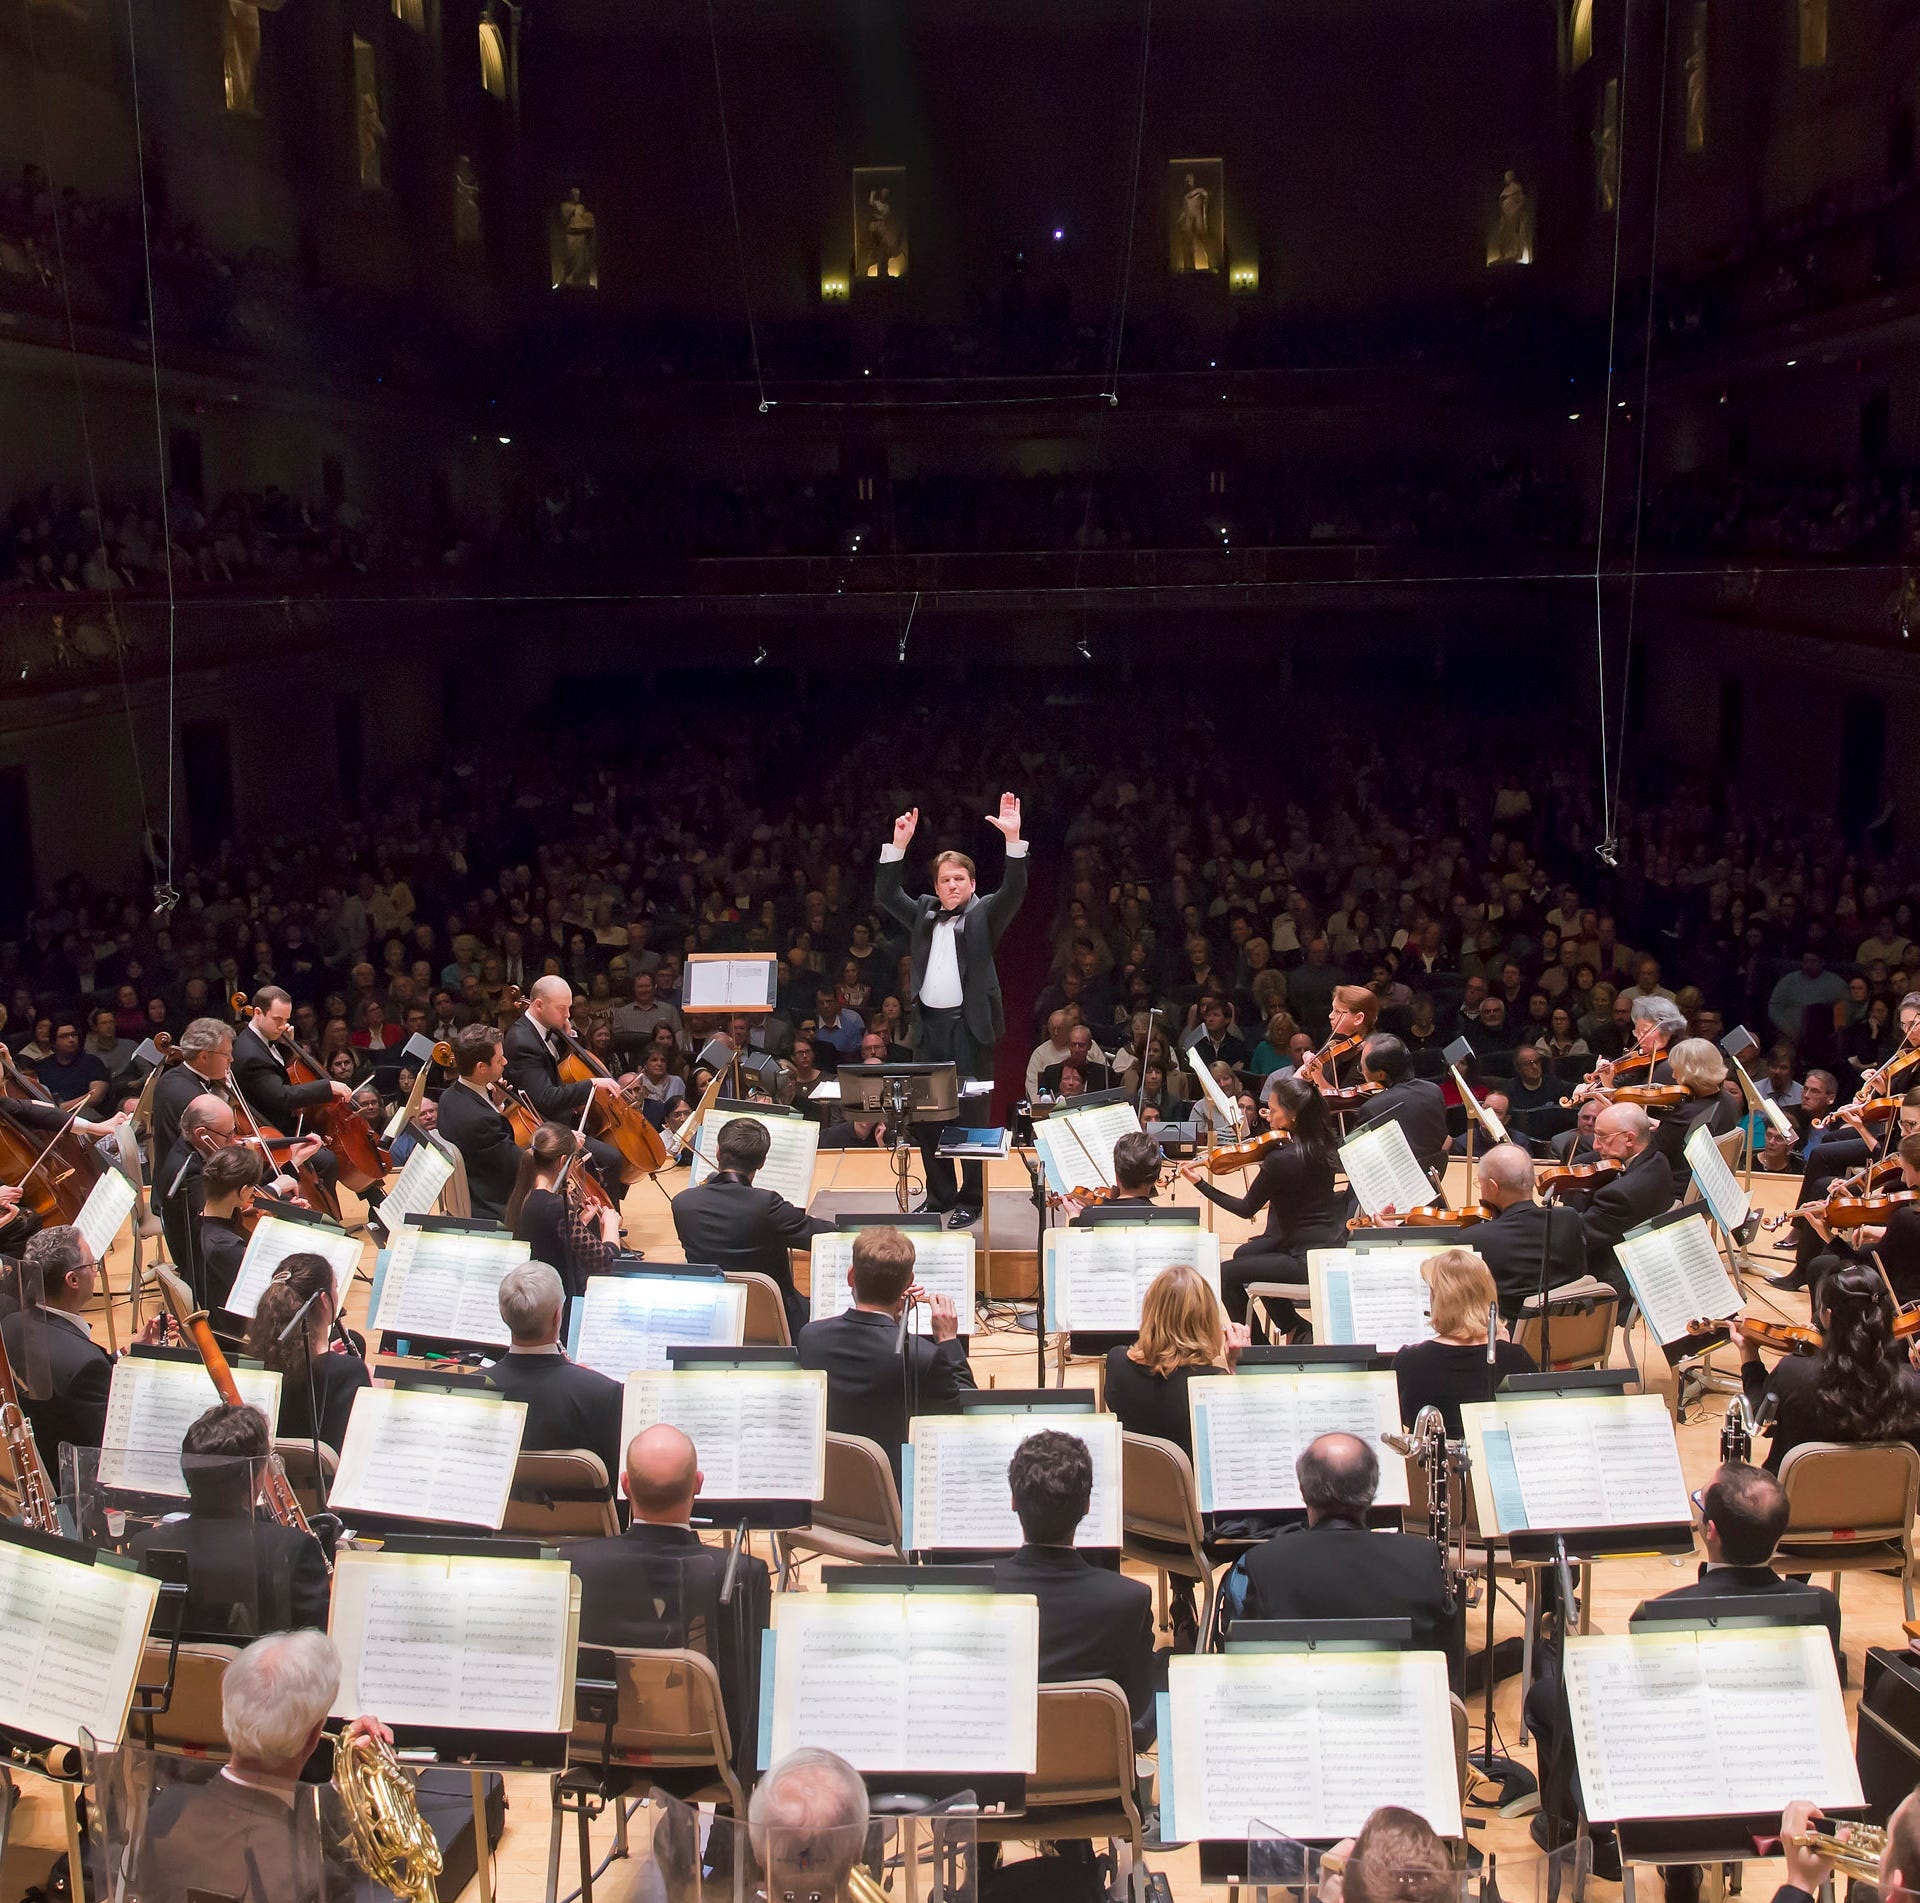 Boston Pops honors John Williams music with tour